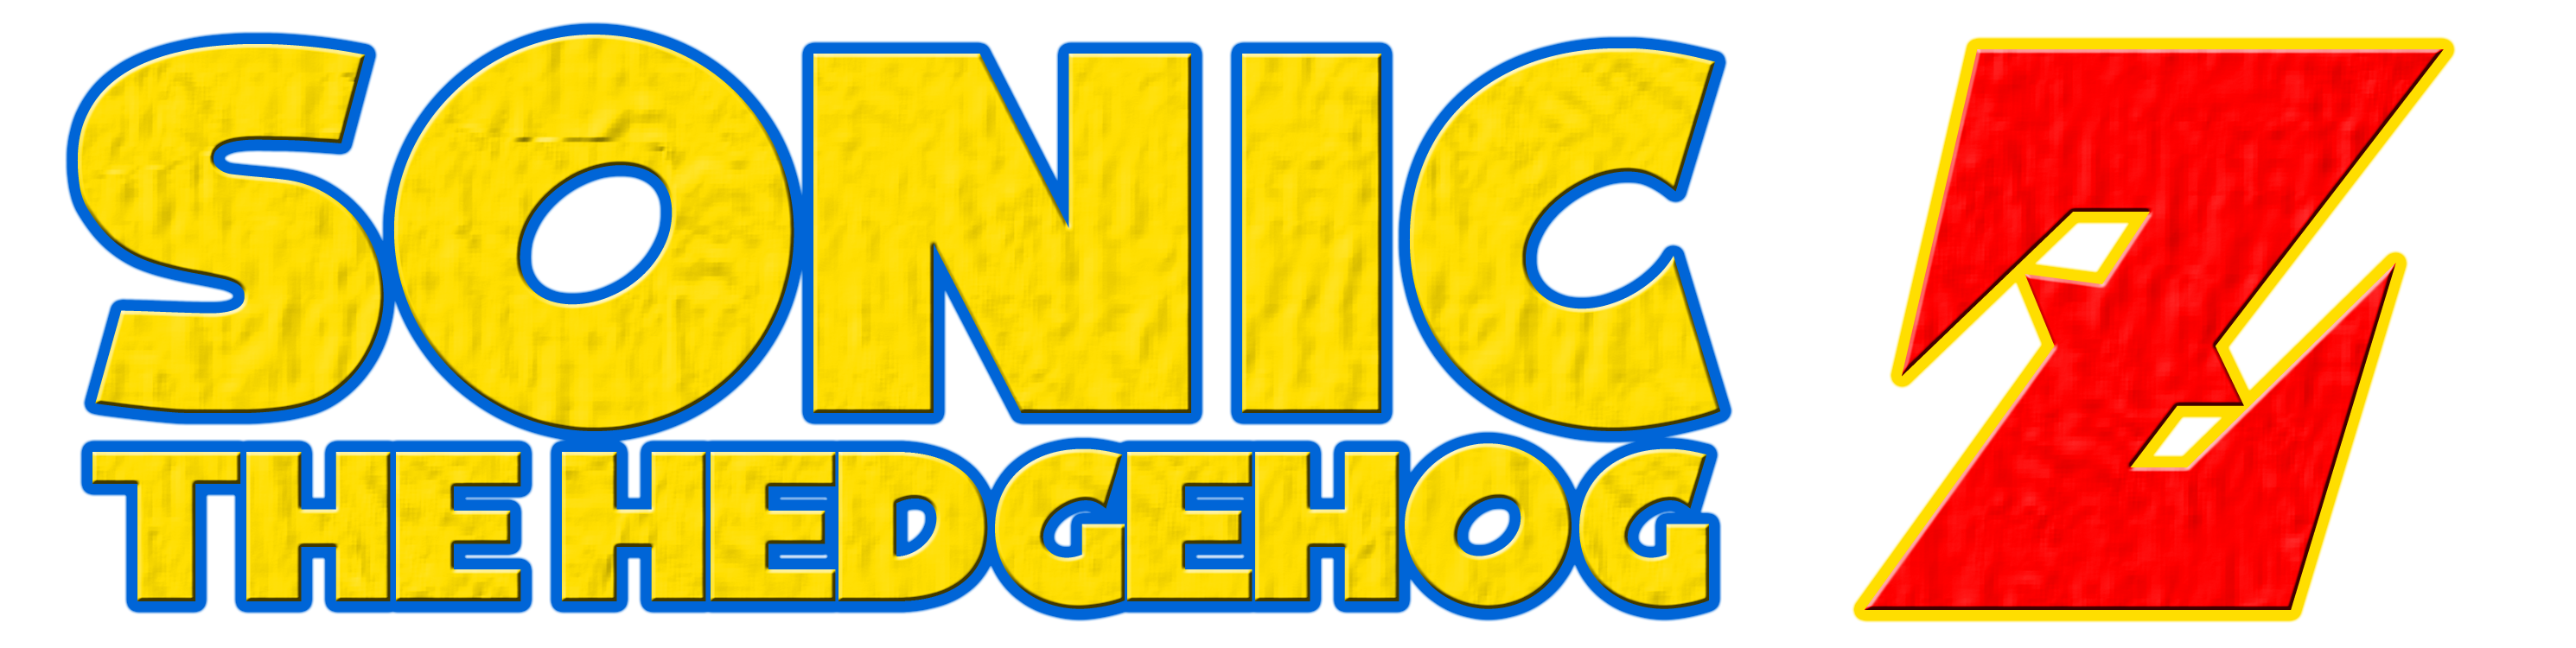 Sonic The Hedgehog Z Logo By Asylusgoji91 On Deviantart